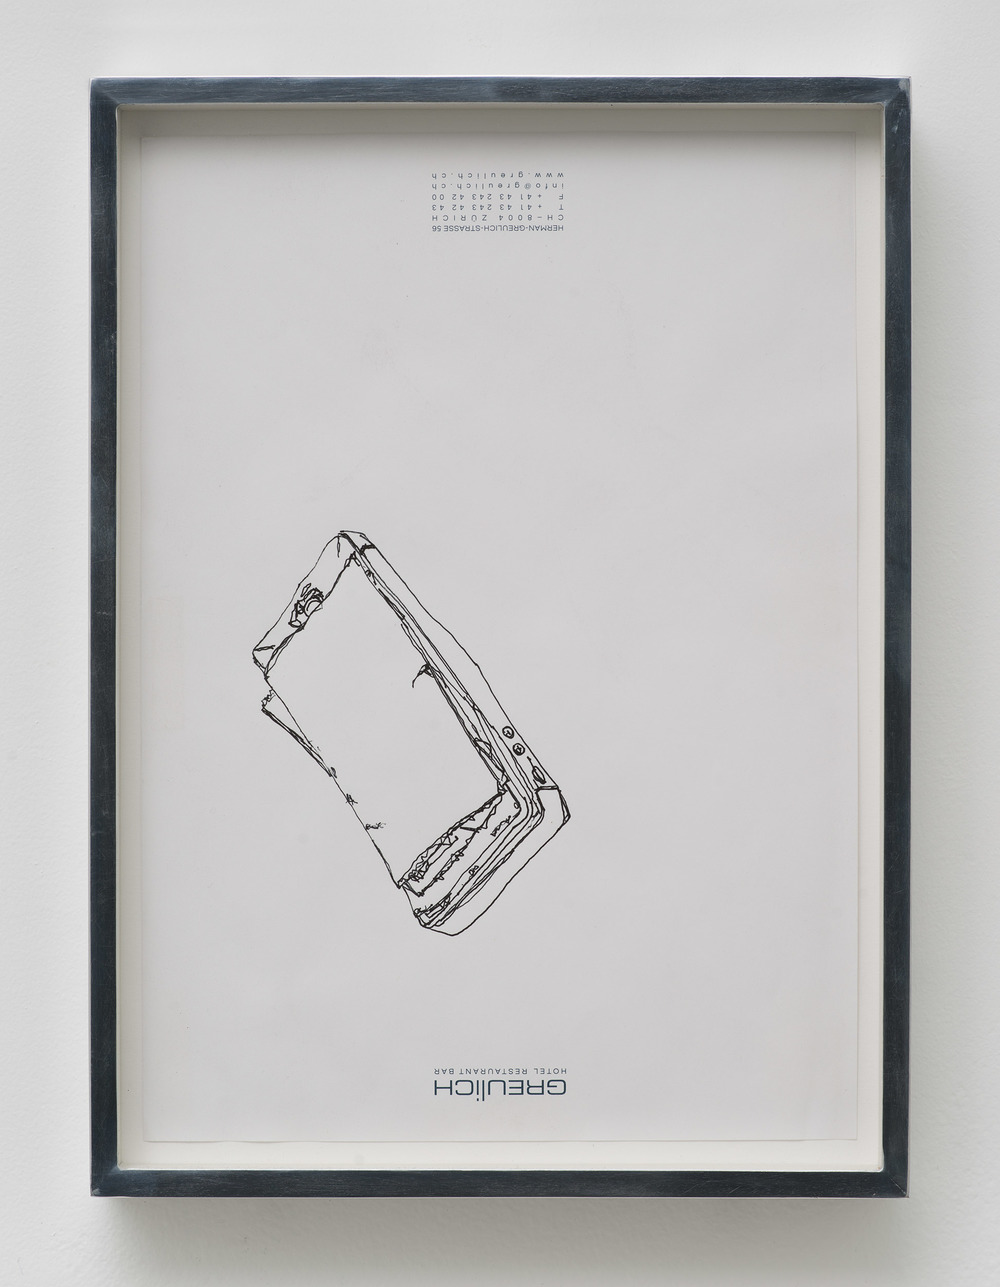 iPhone 5 A1429: Hotel Greulich, Zürich, Switzerland, September 26, 2014    2015   Ink on letterhead  12 7/8 x 9 1/2 inches   Drawings, 2014–